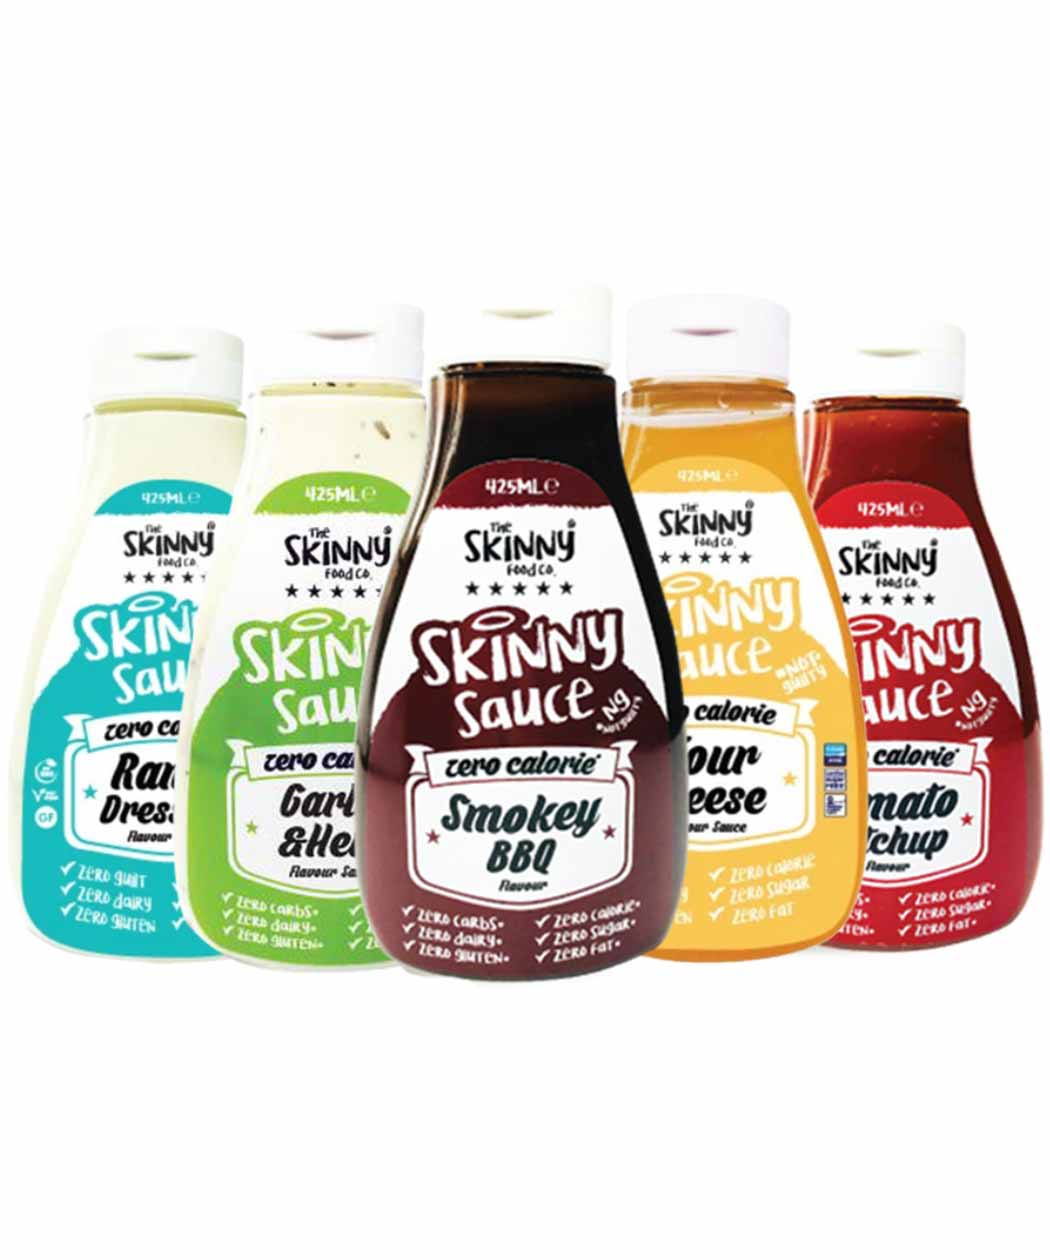 The Skinny Food Co Skinny Sauce 425ml